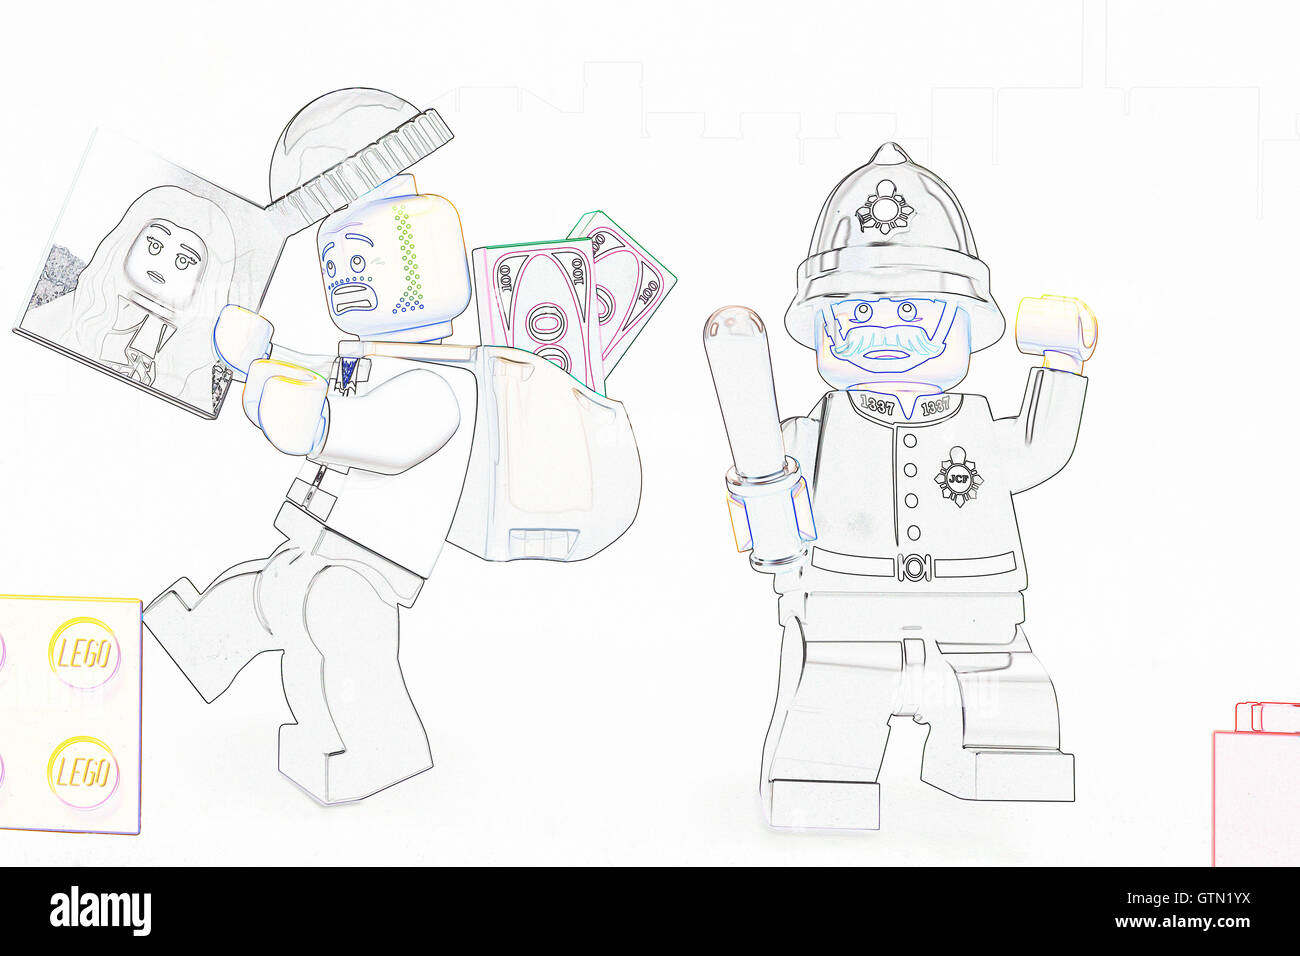 Line Art Figures : Lego figures stock photos images alamy